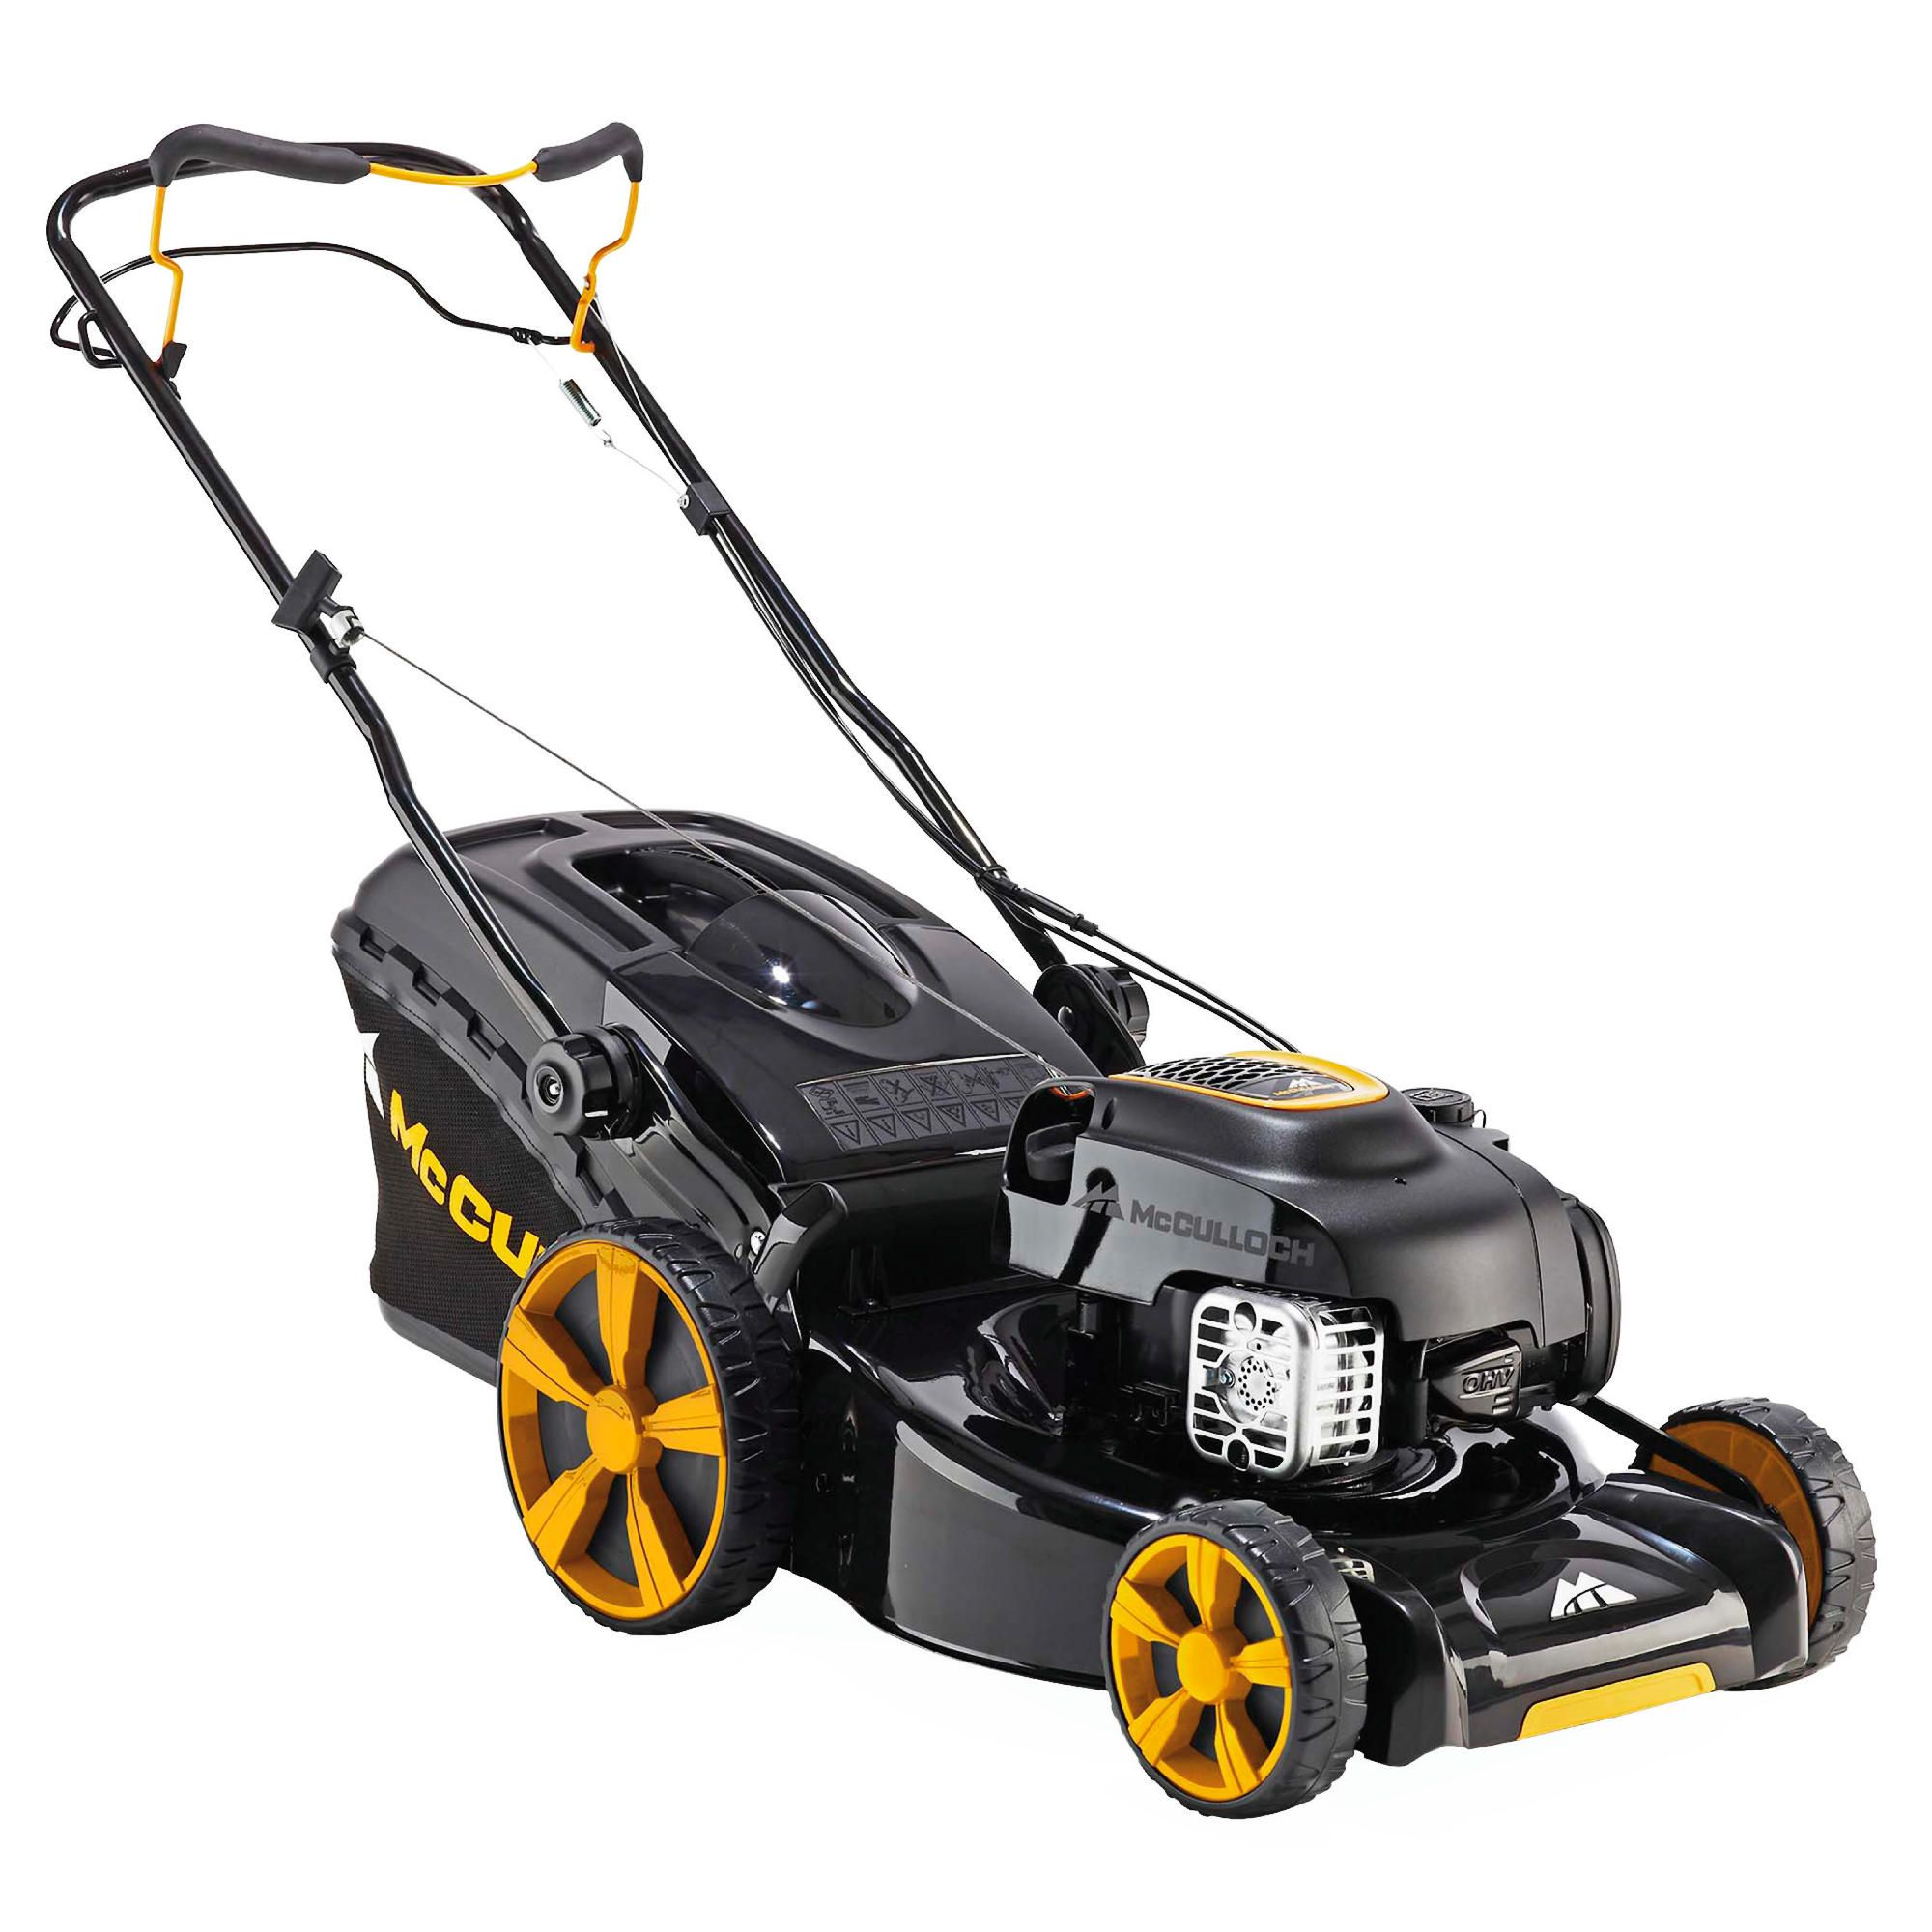 McCulloch M46-140WR - Petrol Lawnmower at Tesco Direct